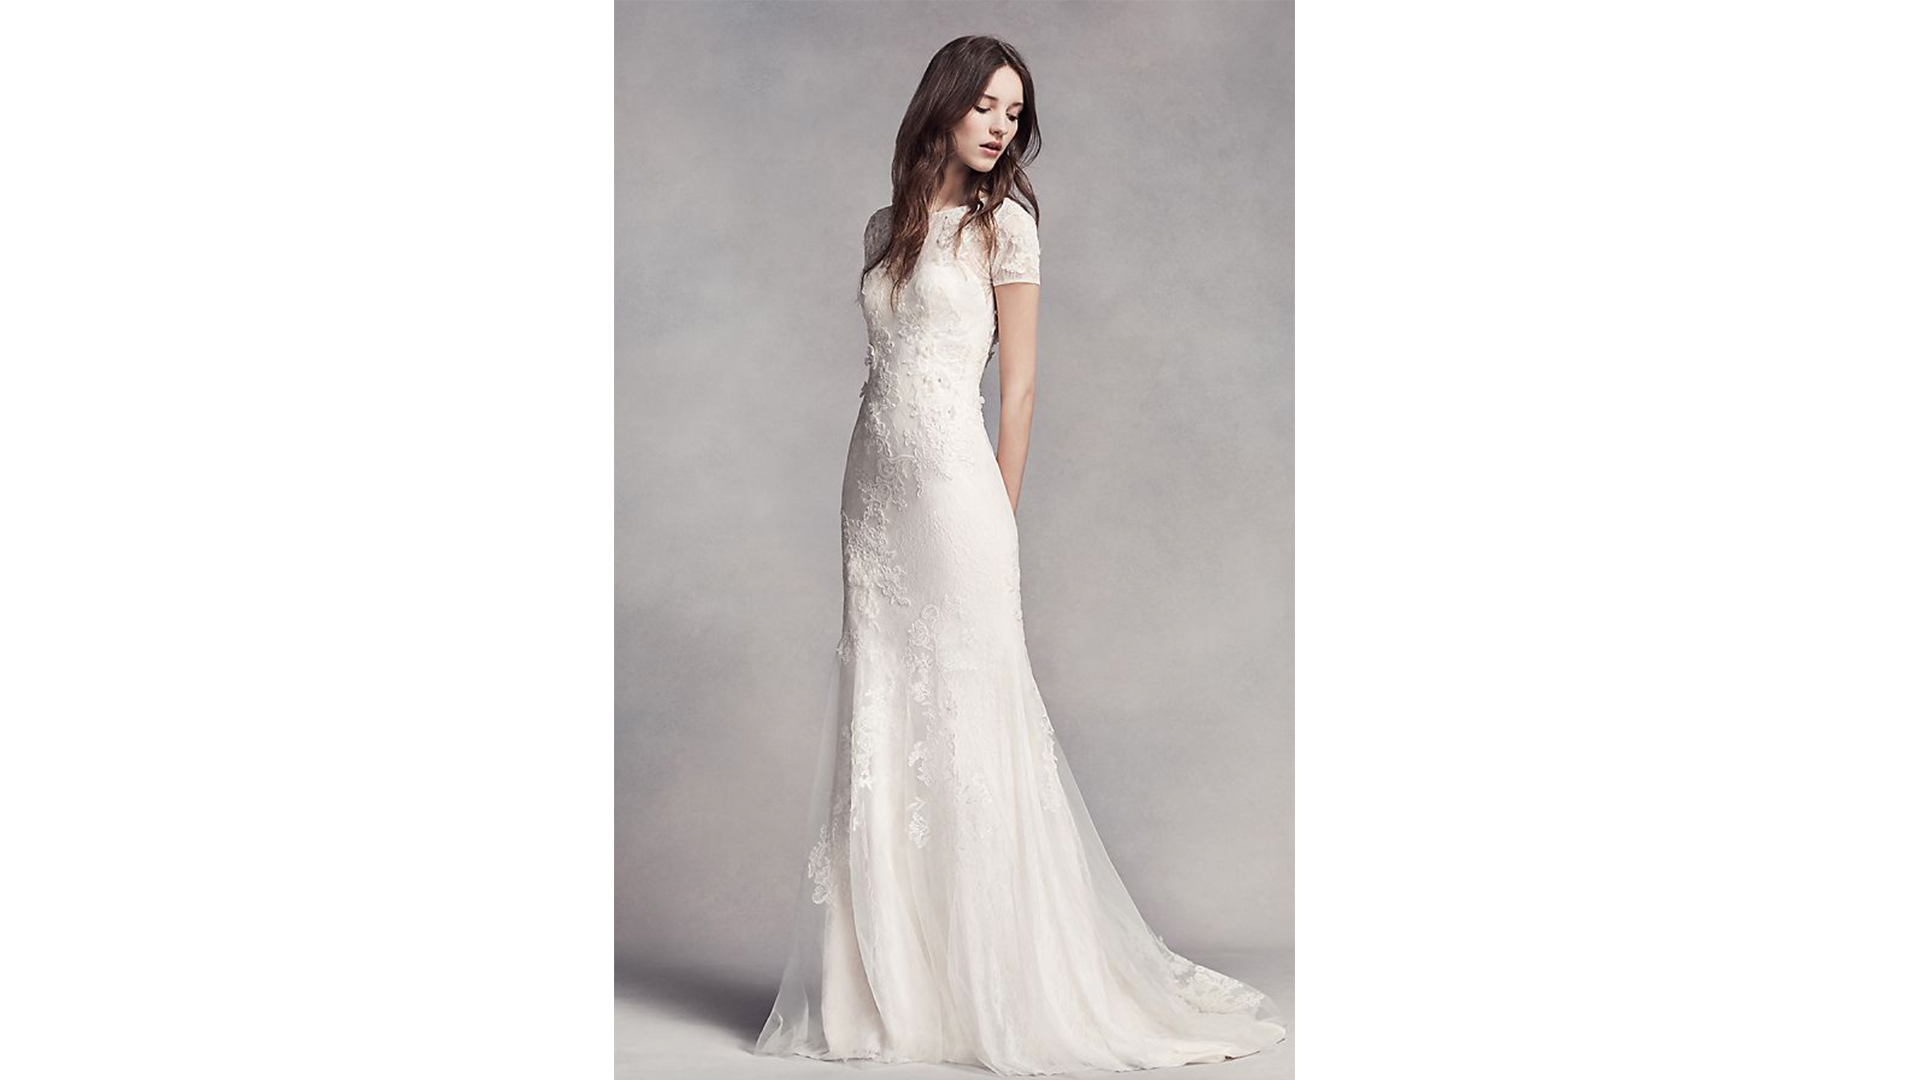 Stunning Lace Wedding Dresses You Have To See | Southern Living